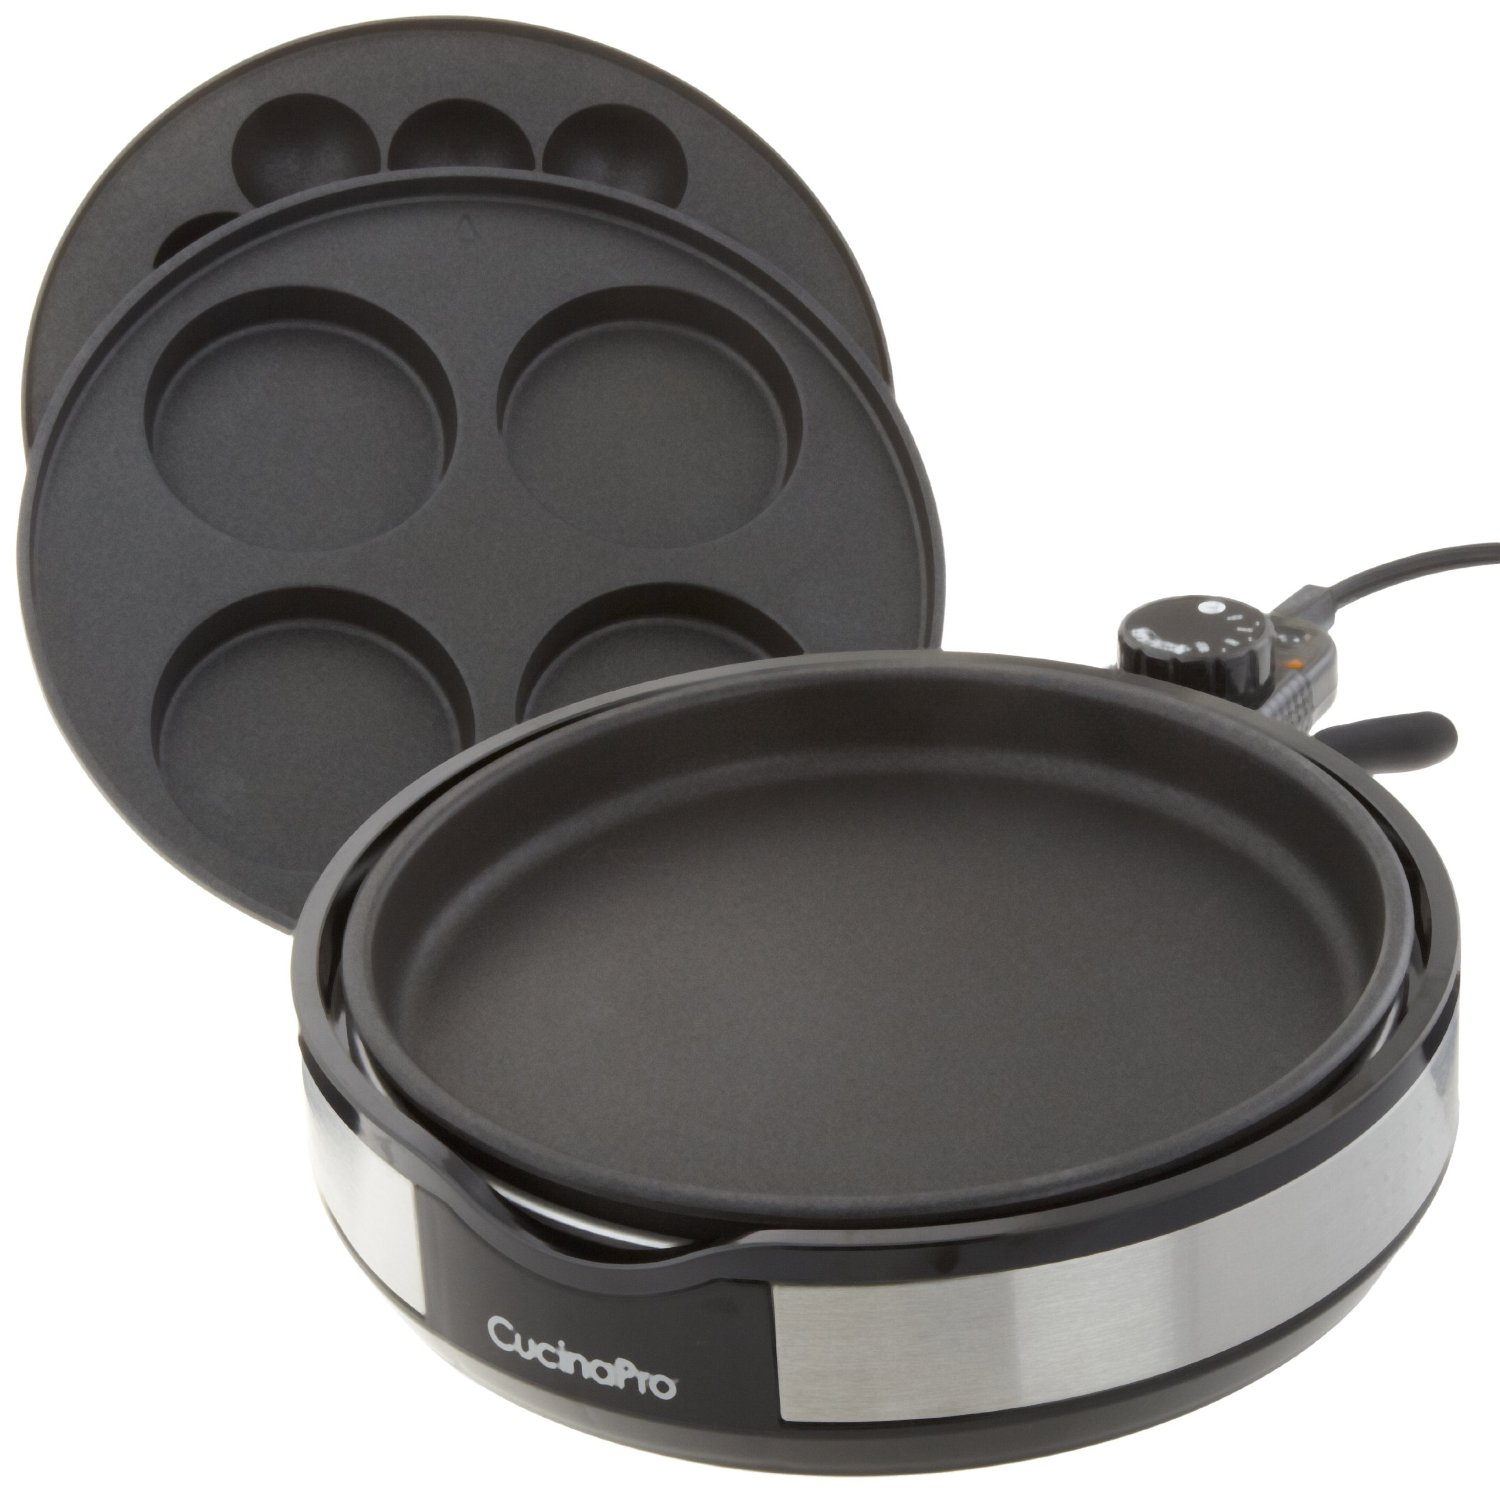 CucinaPro Multi Baker Deluxe Electric Skillet